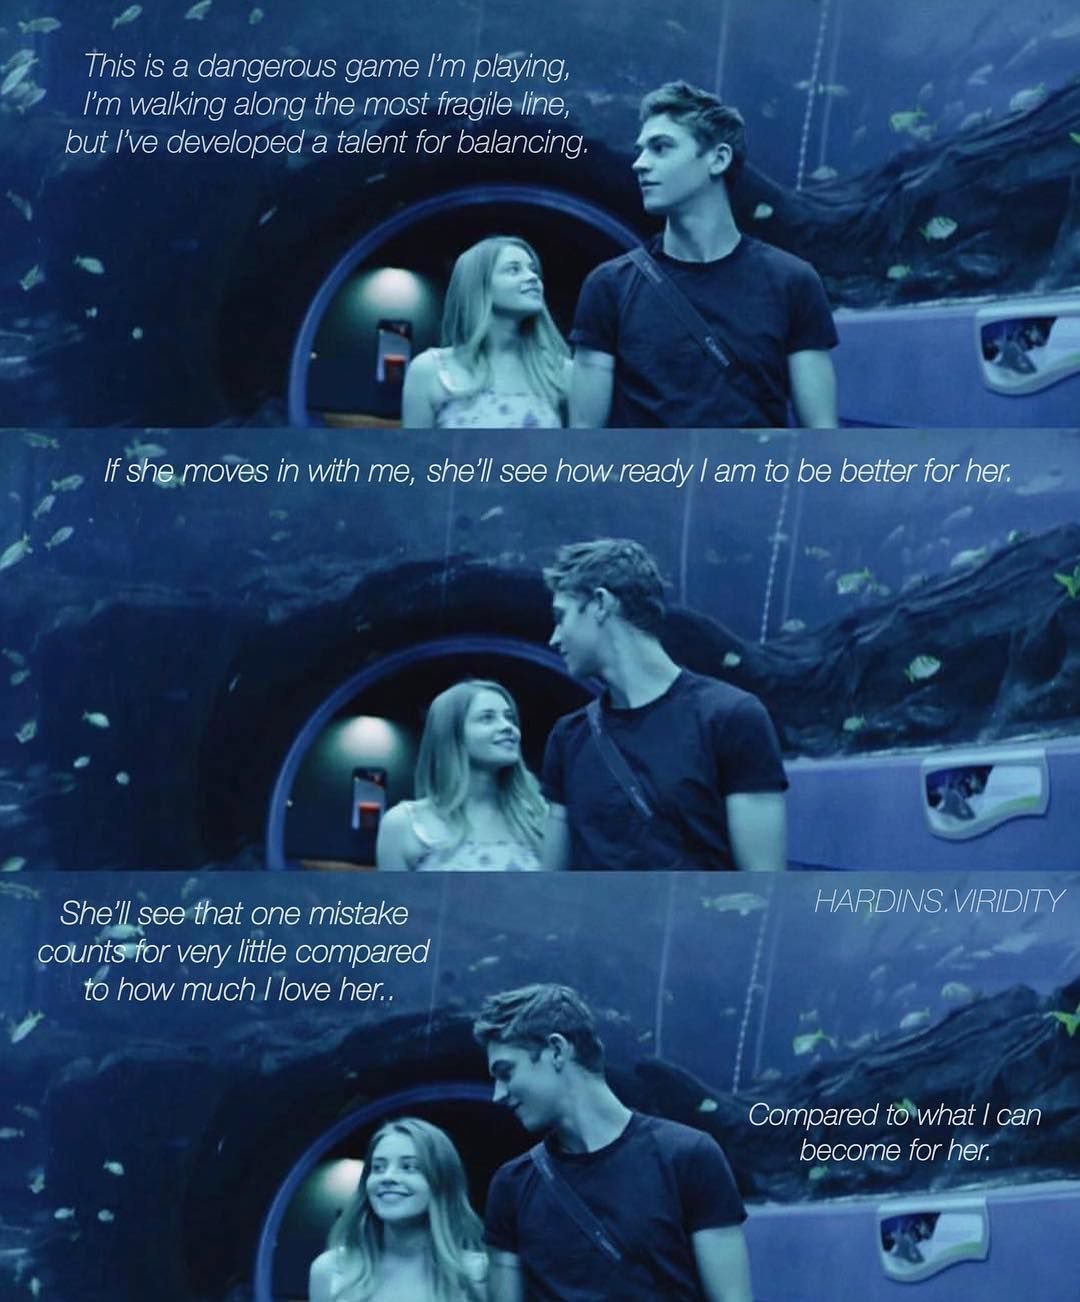 It's not actually what hardin is saying in the movie.